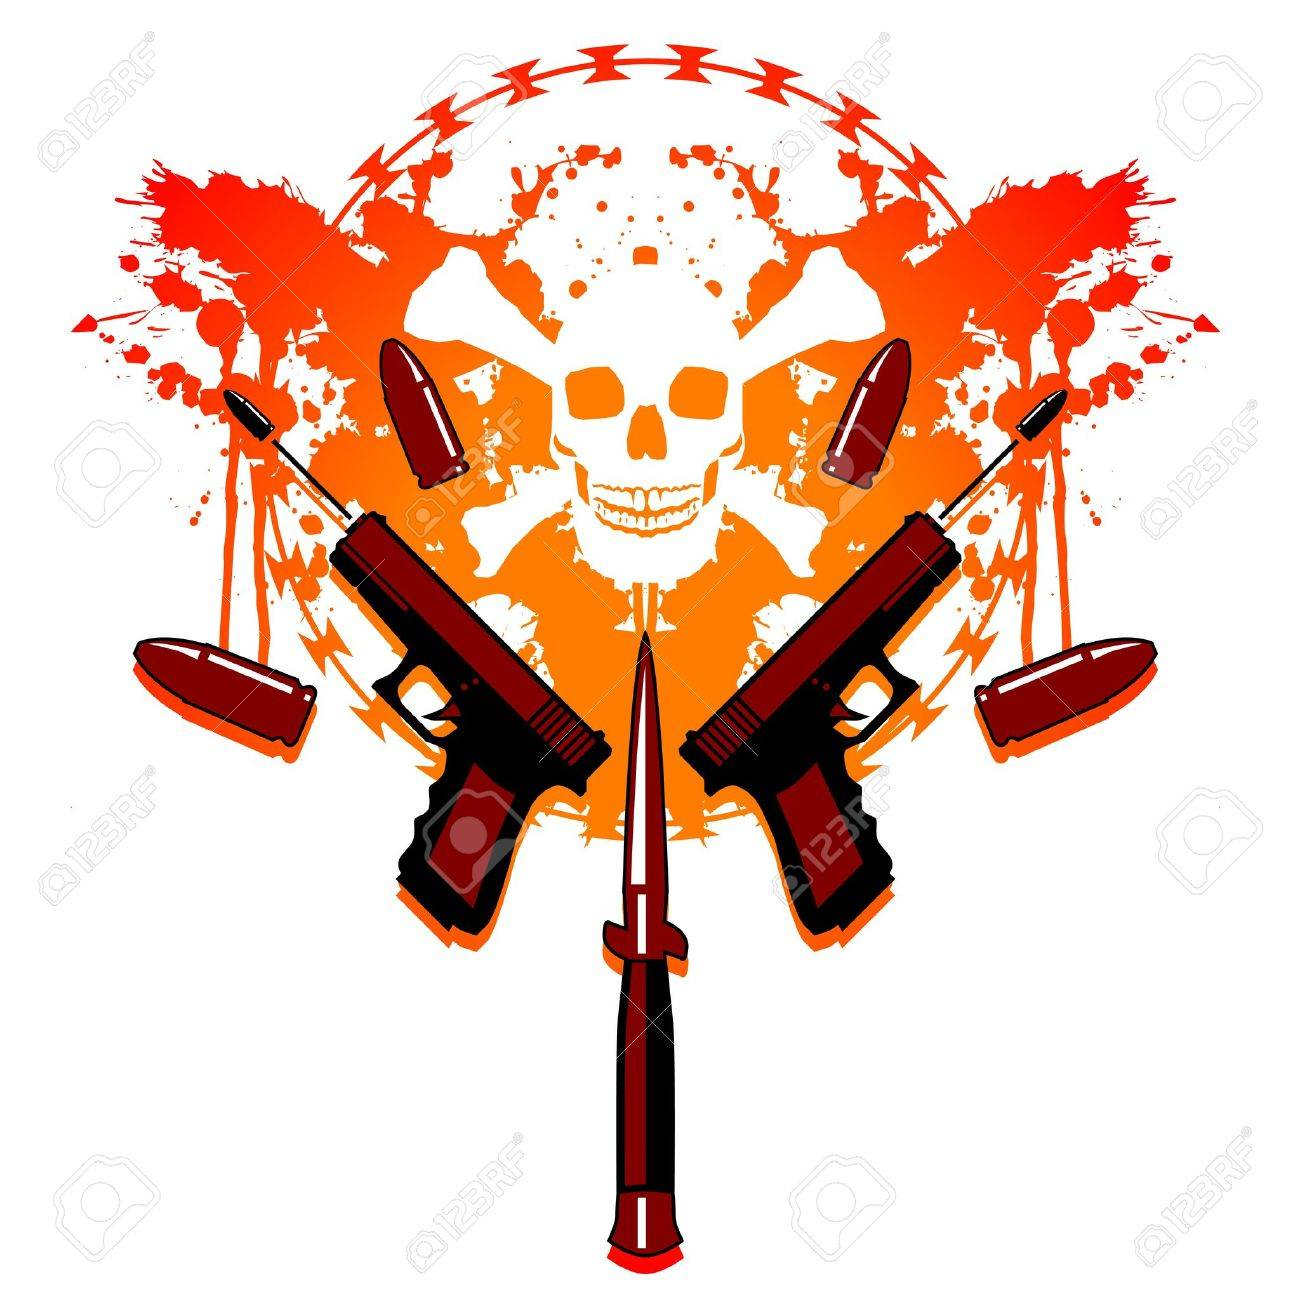 Bullets and blood Stock Vector - 11527052